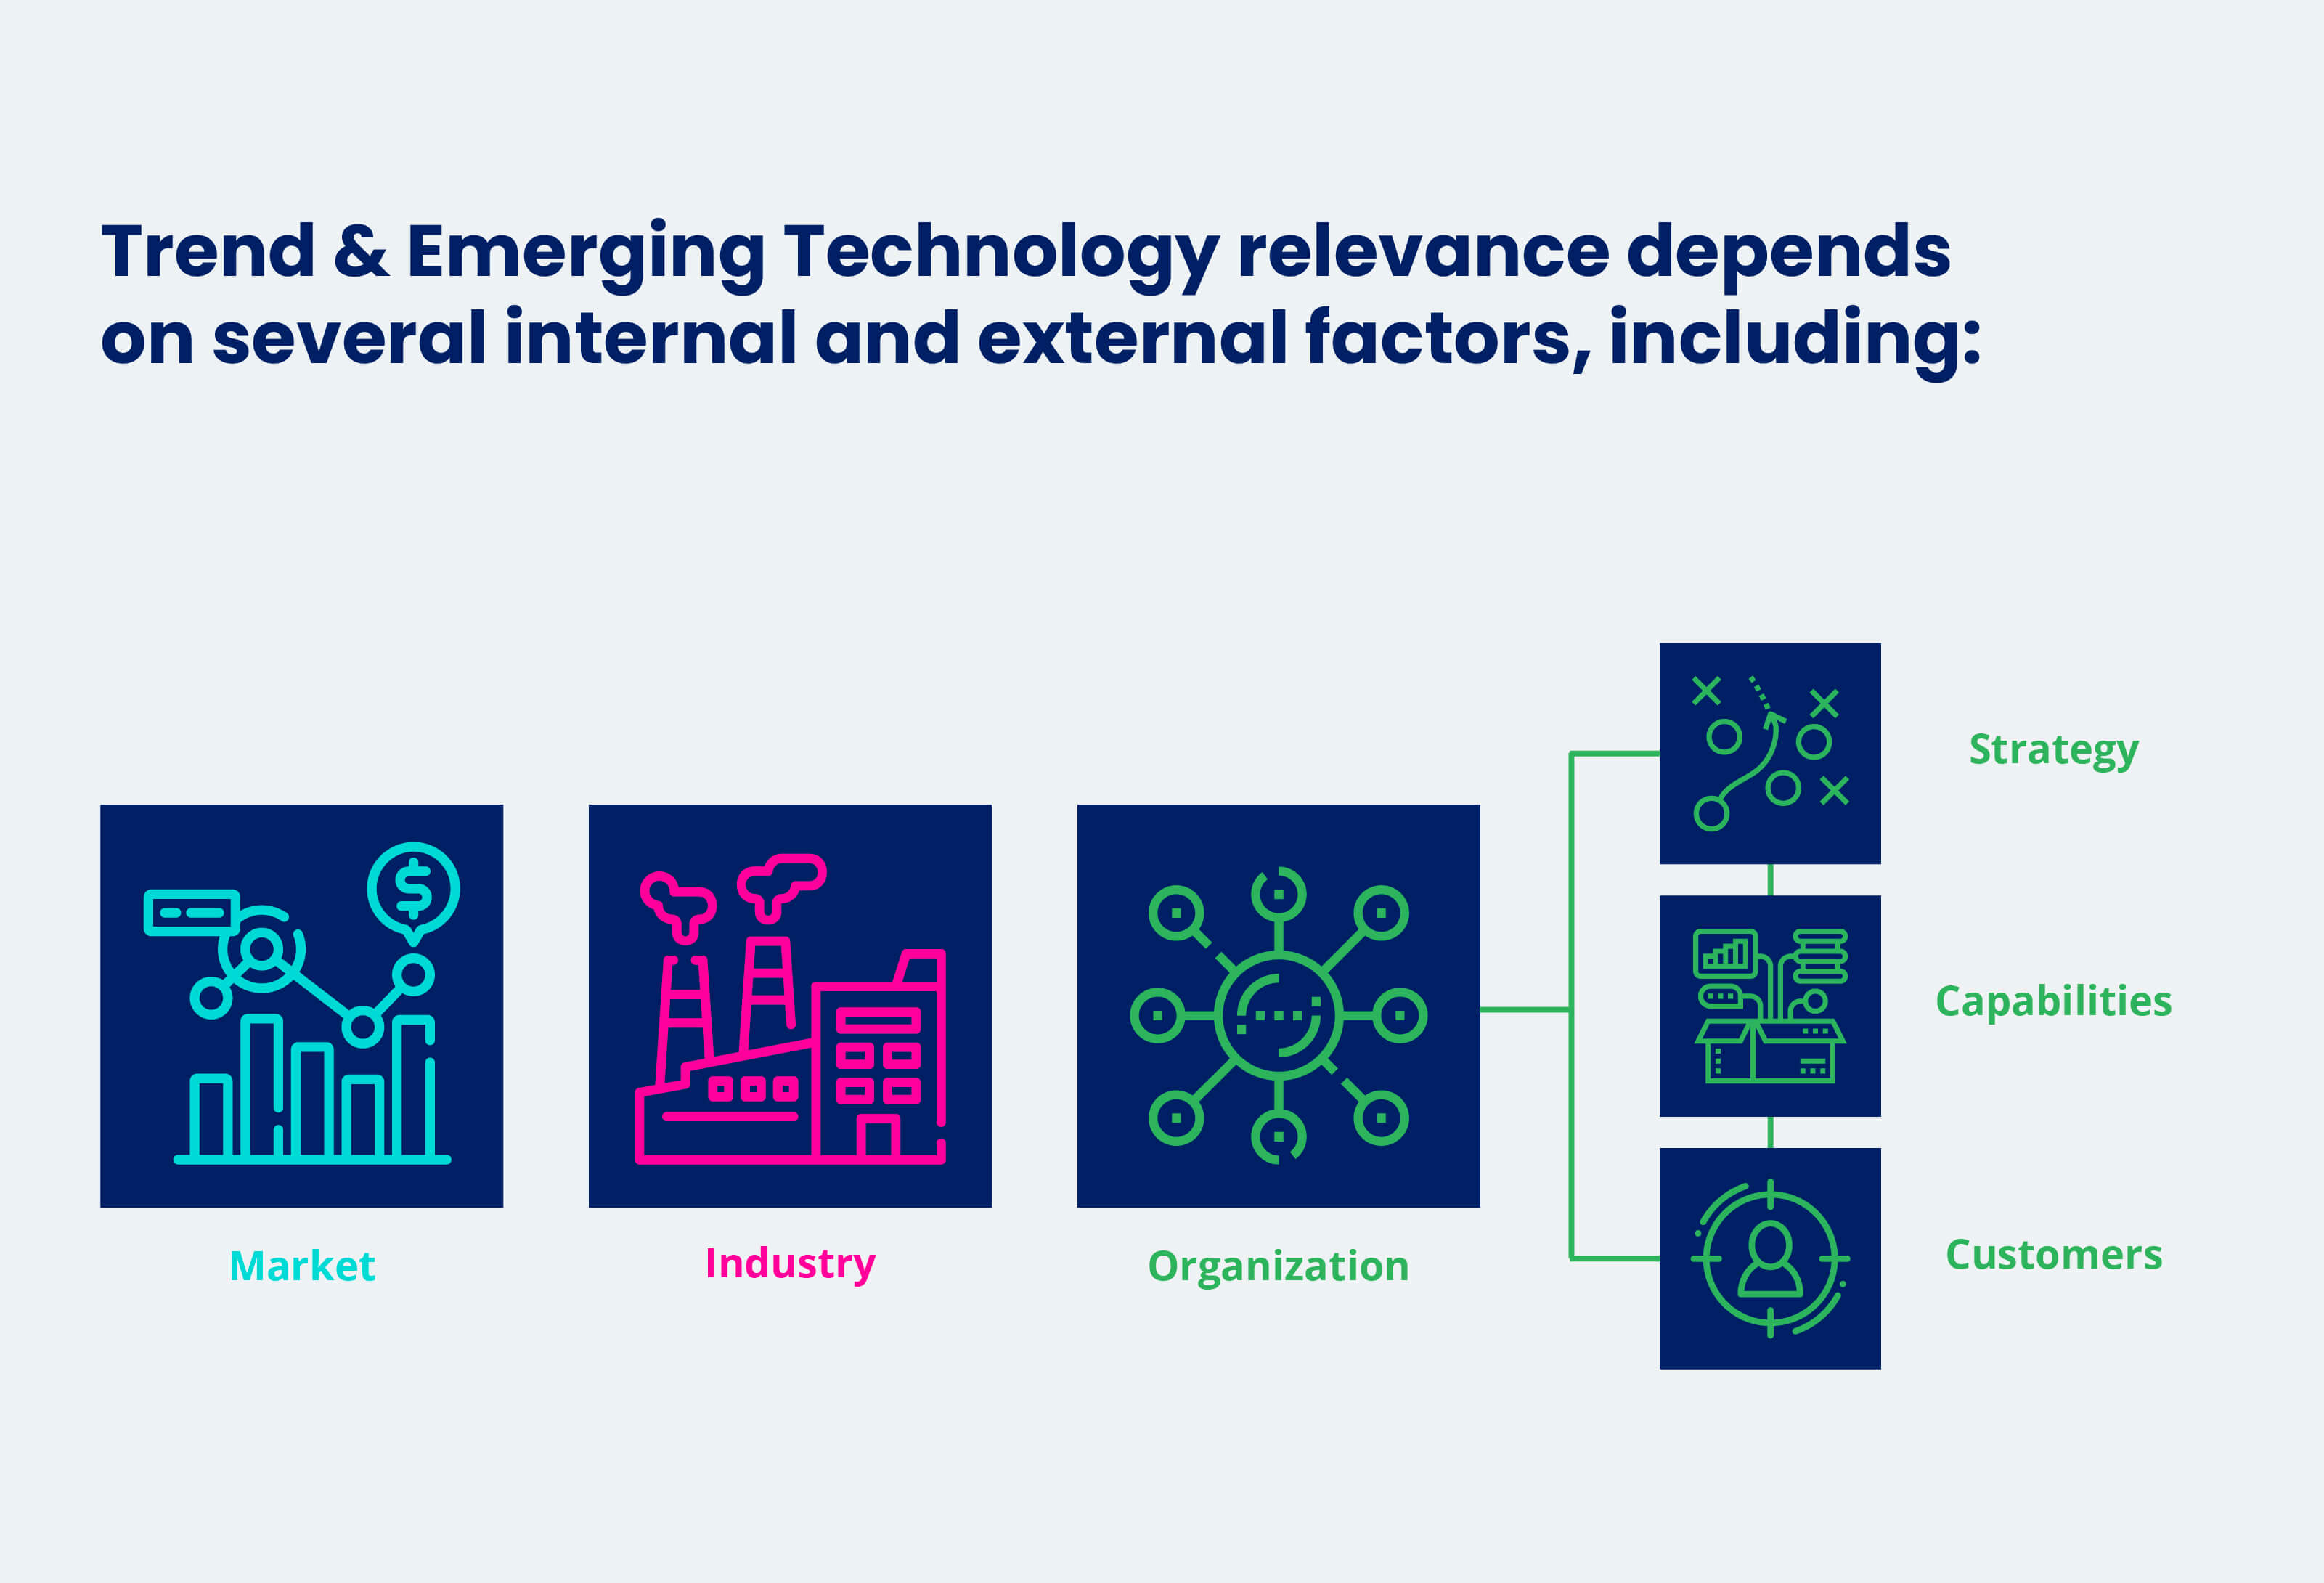 Factors for Trend & Emerging Technology Relevance